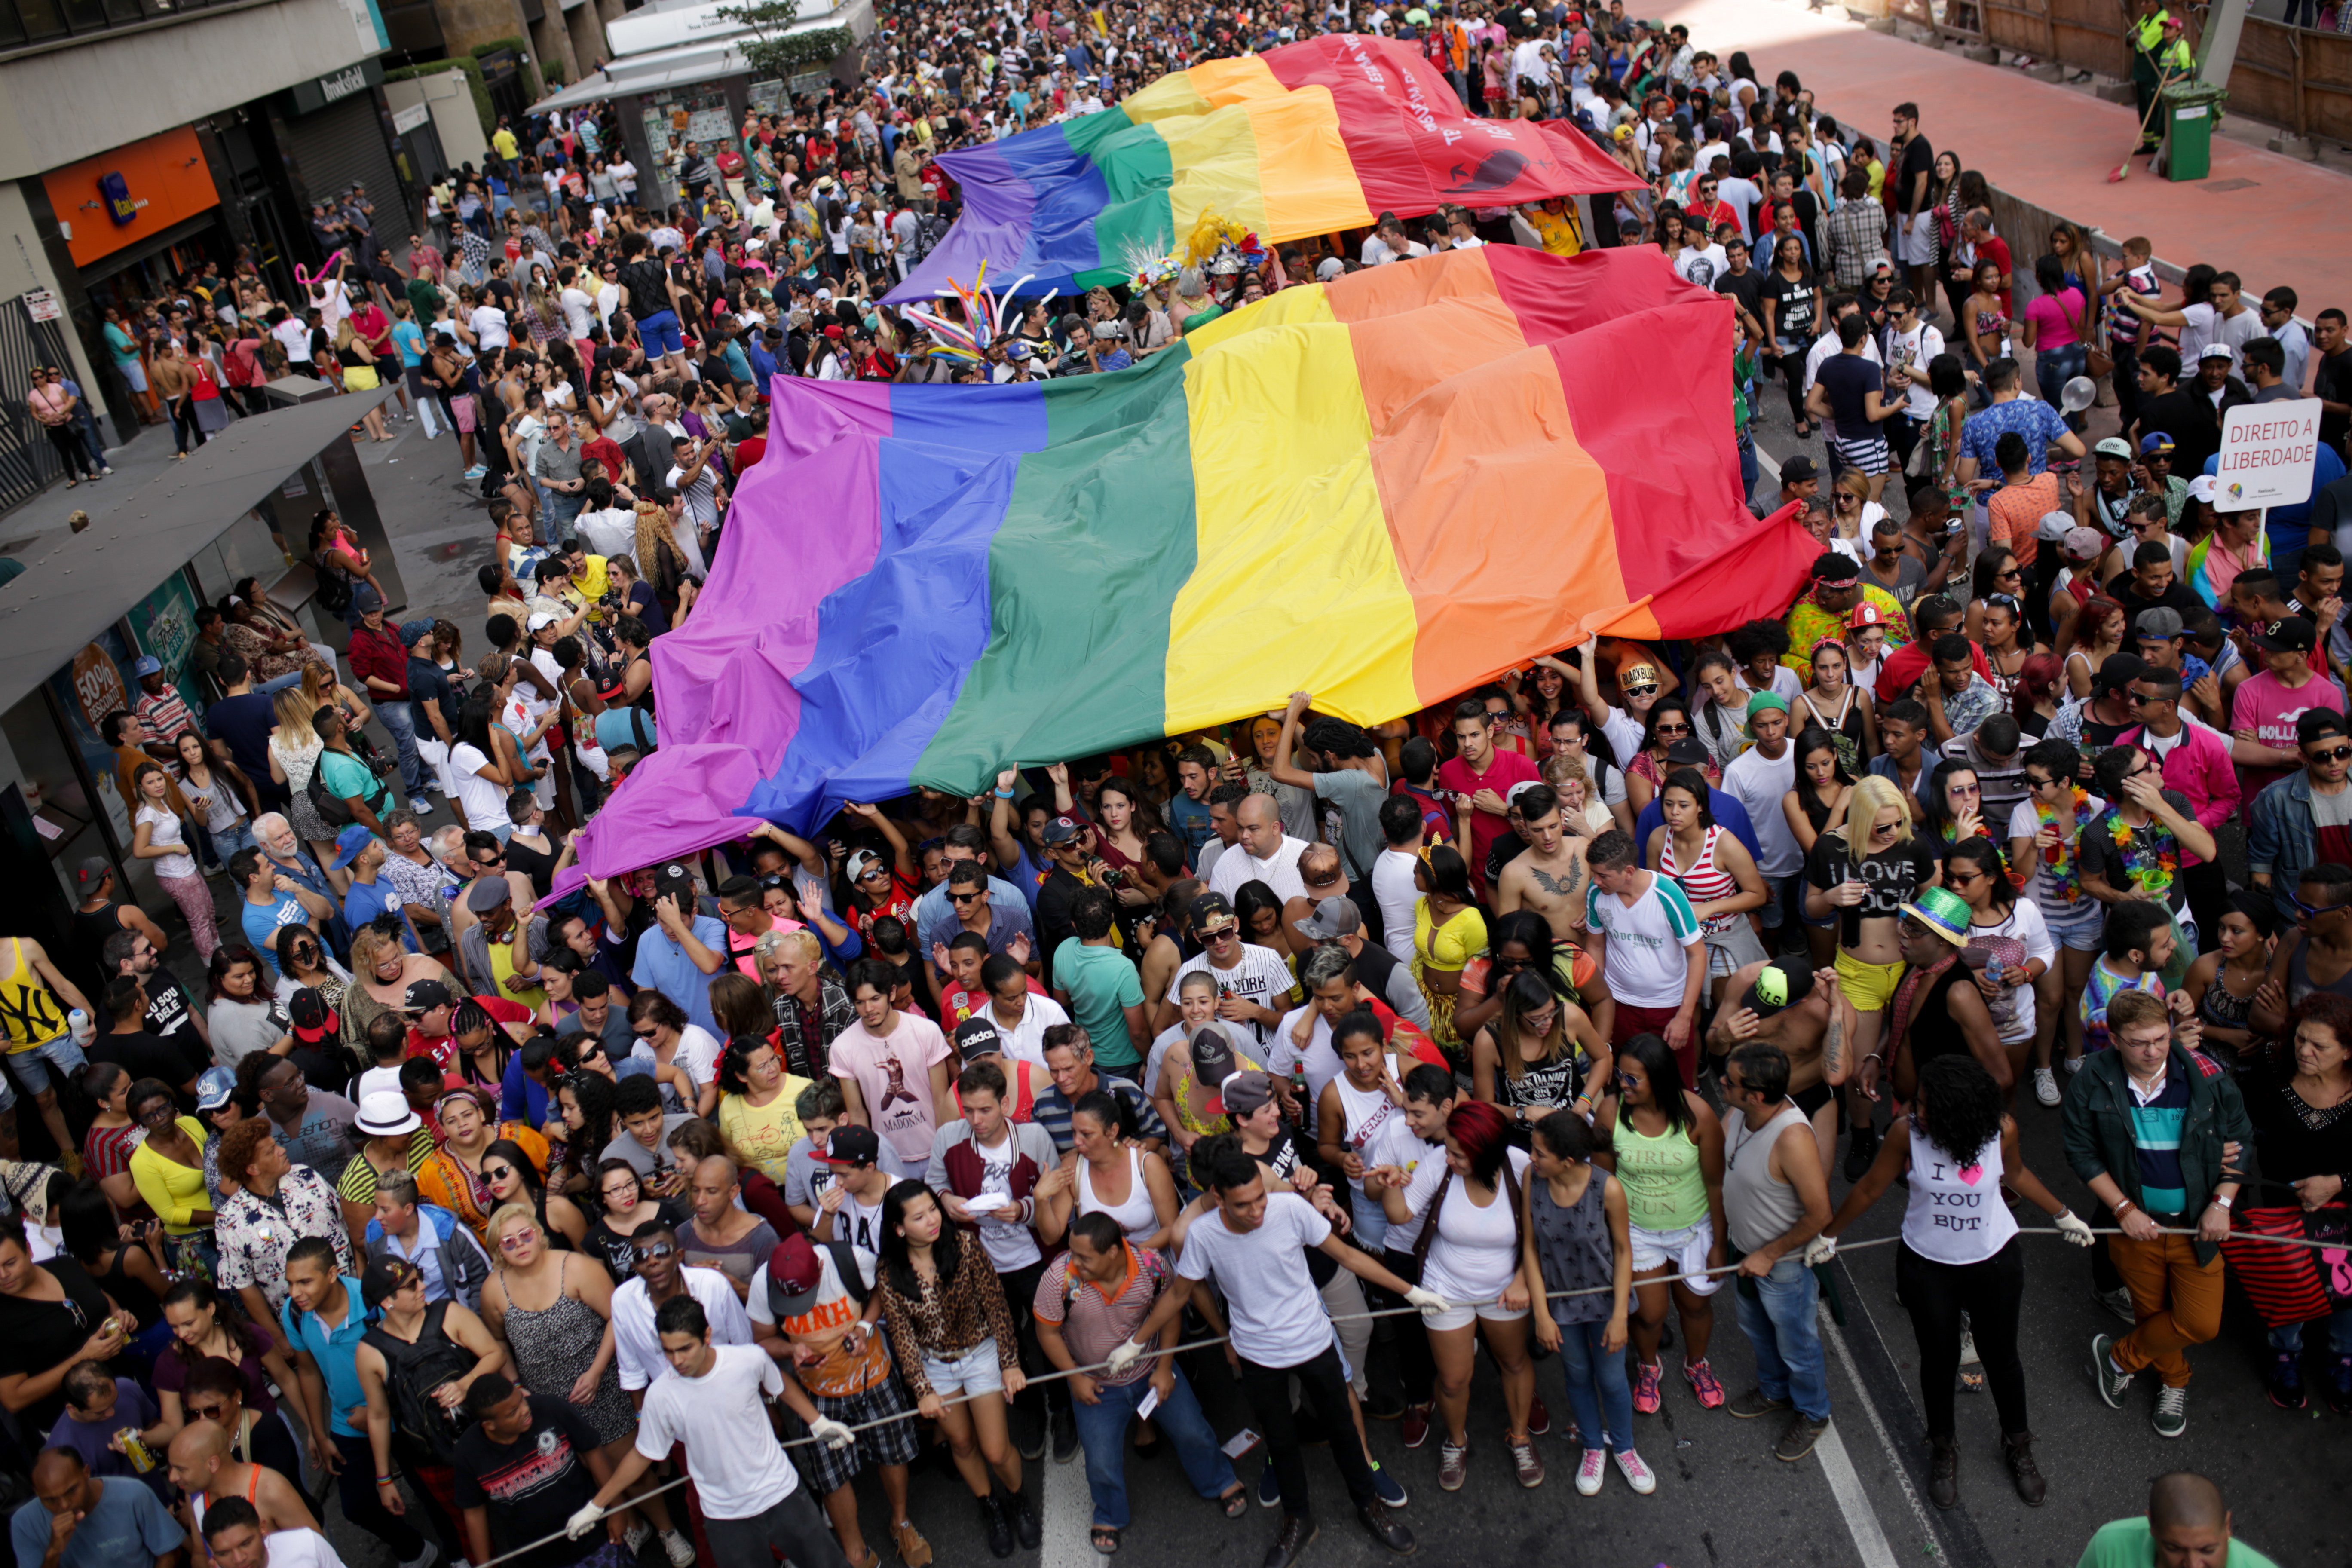 Participants of Sao Paulo's 19th annual Gay Pride Parade hold a large flag with the LGBT colors in Sao Paulo on June 7, 2015.